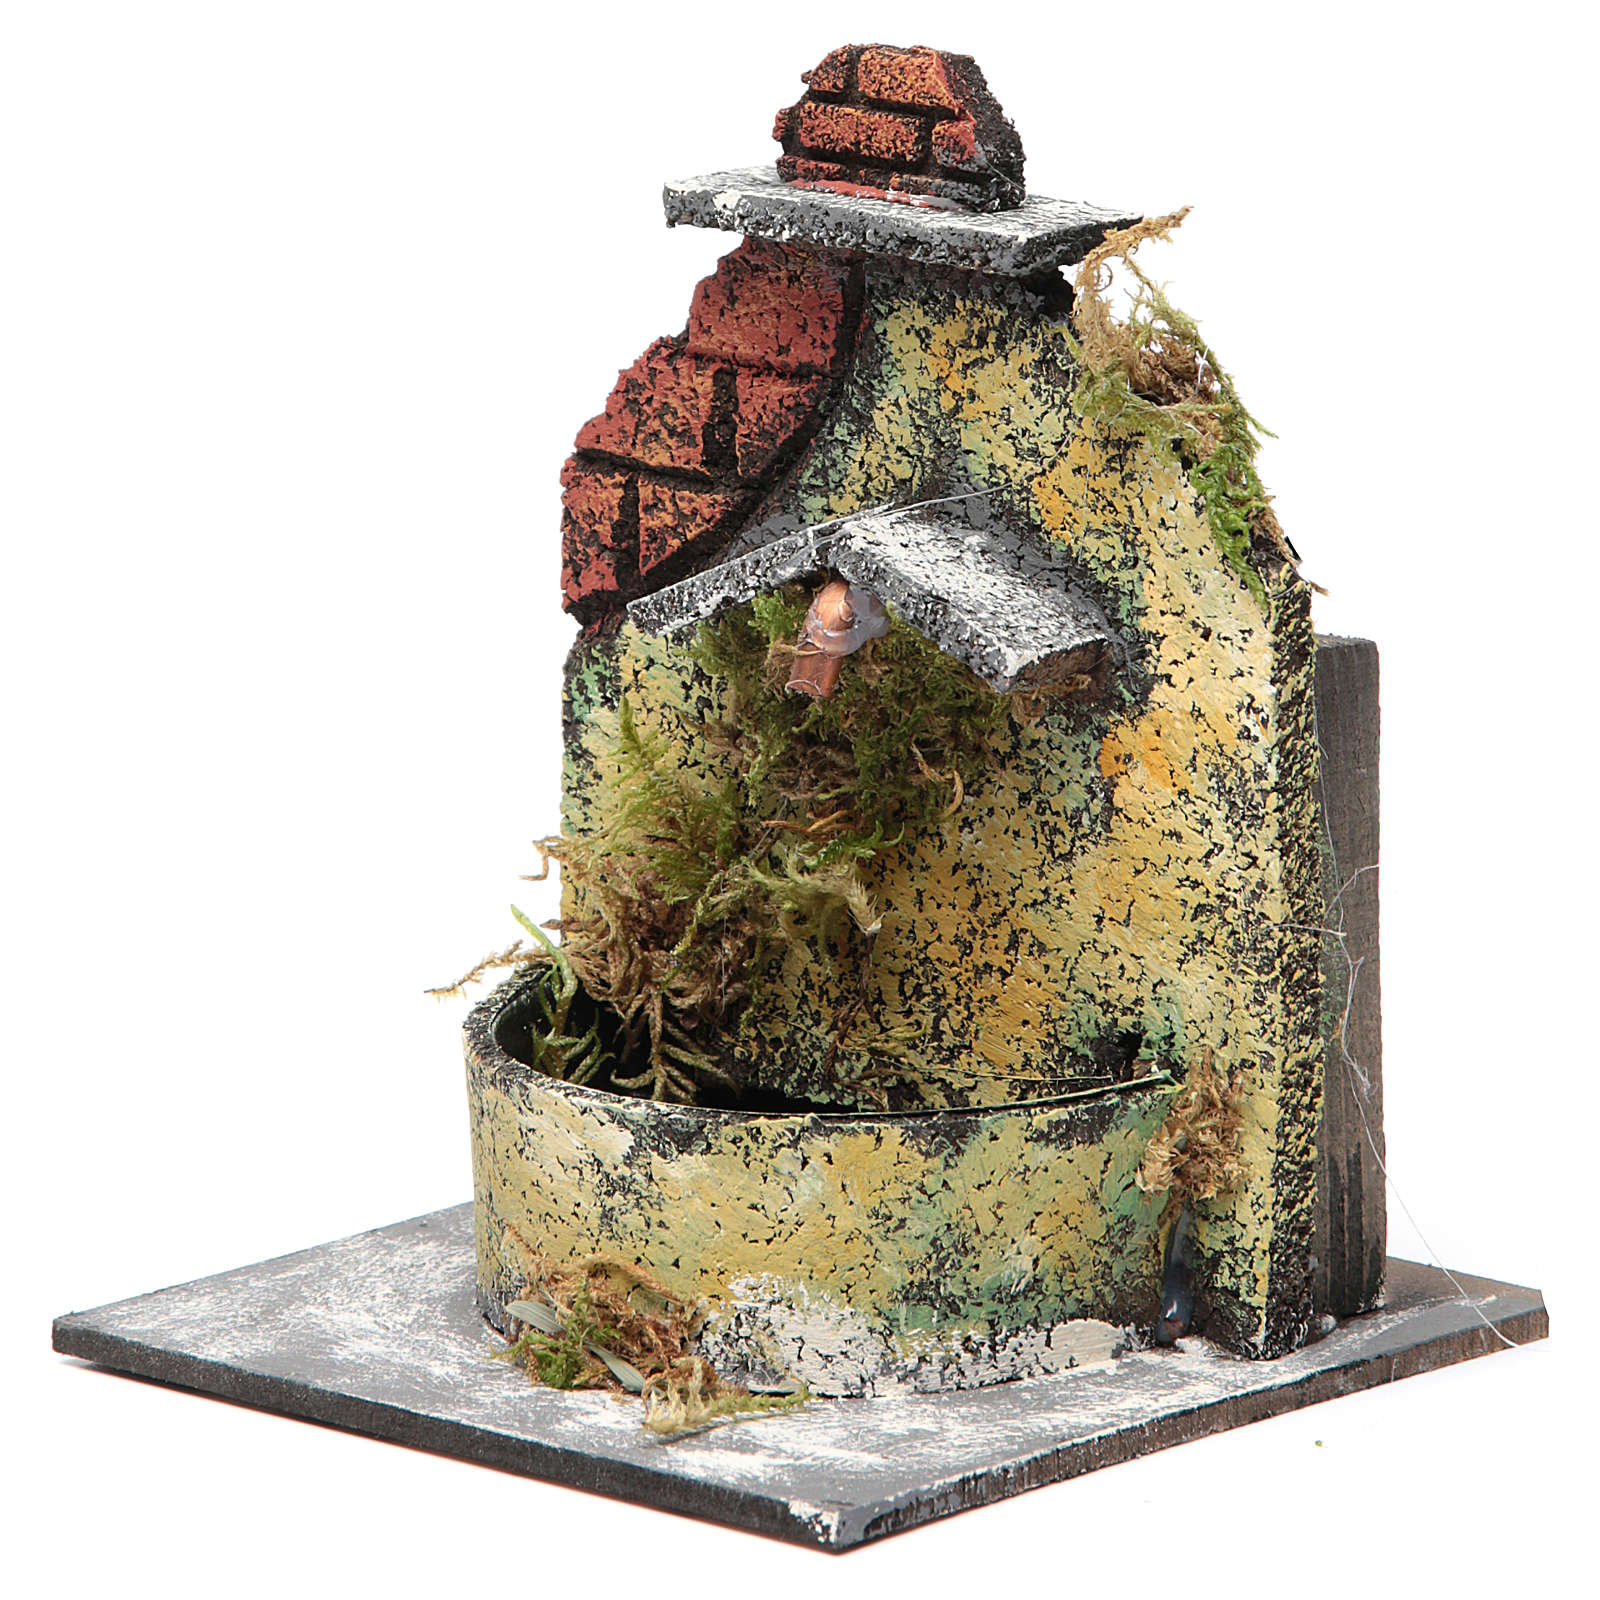 Electric fountain made with wood and cork for Neapolitan Nativity 16x14.5x14cm 4